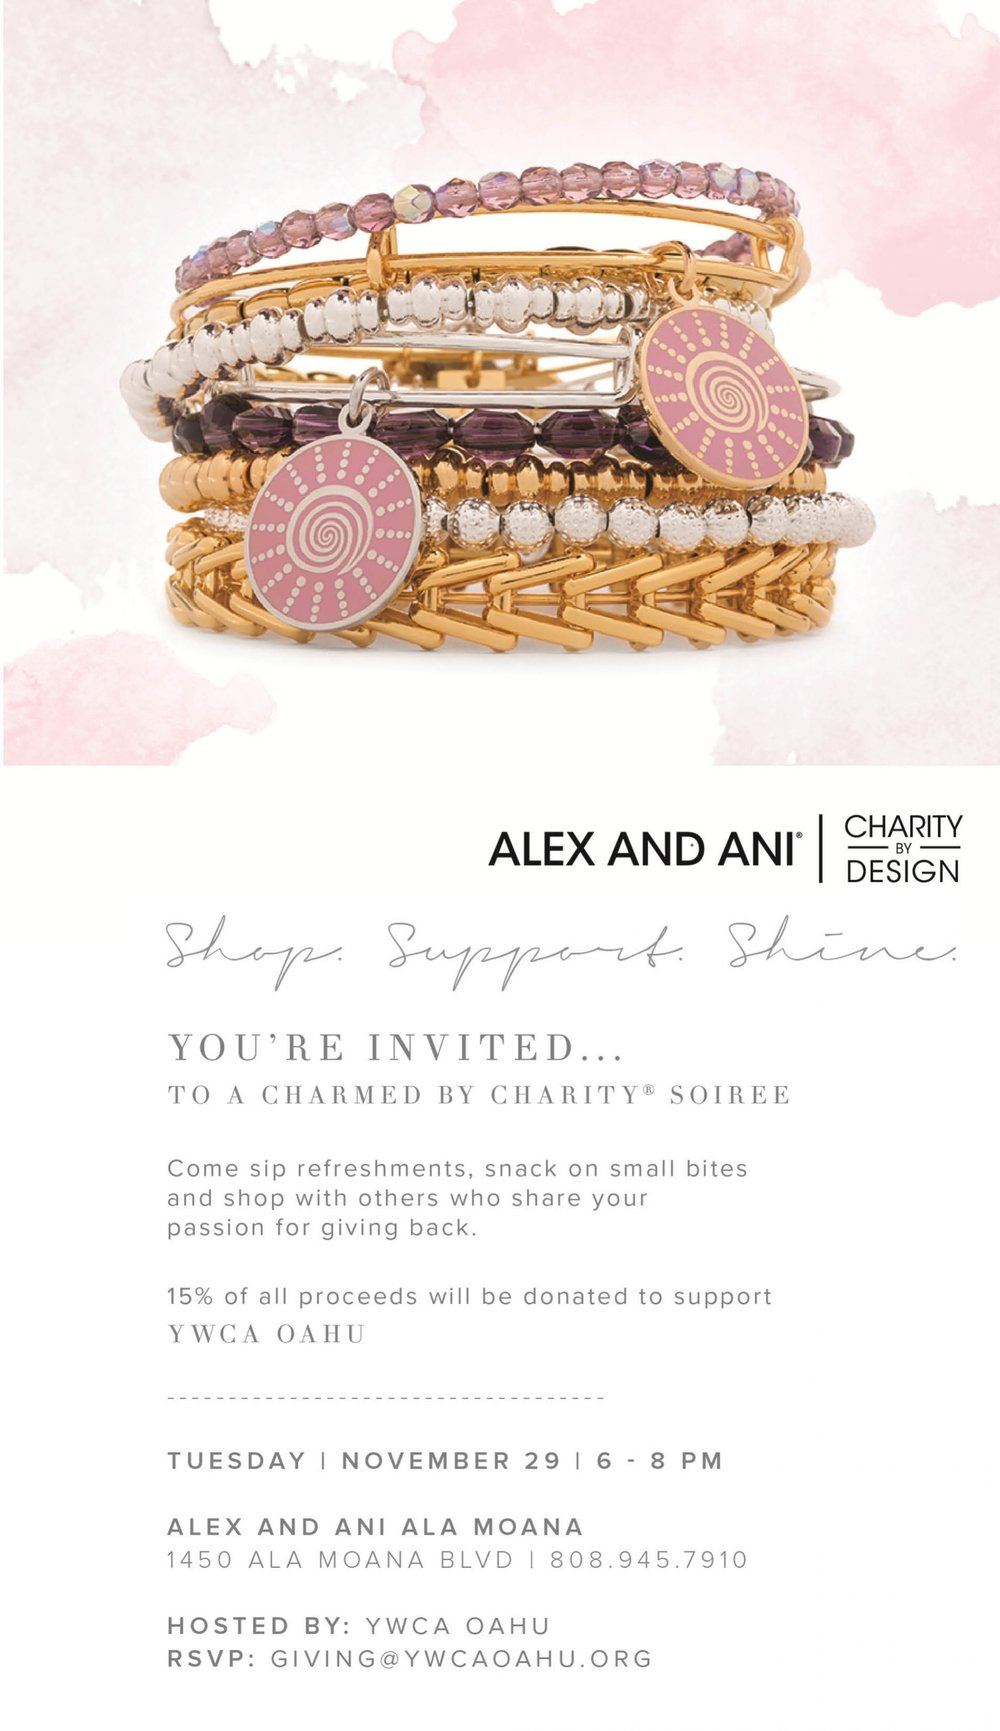 Alex and Ani Flyer.jpg